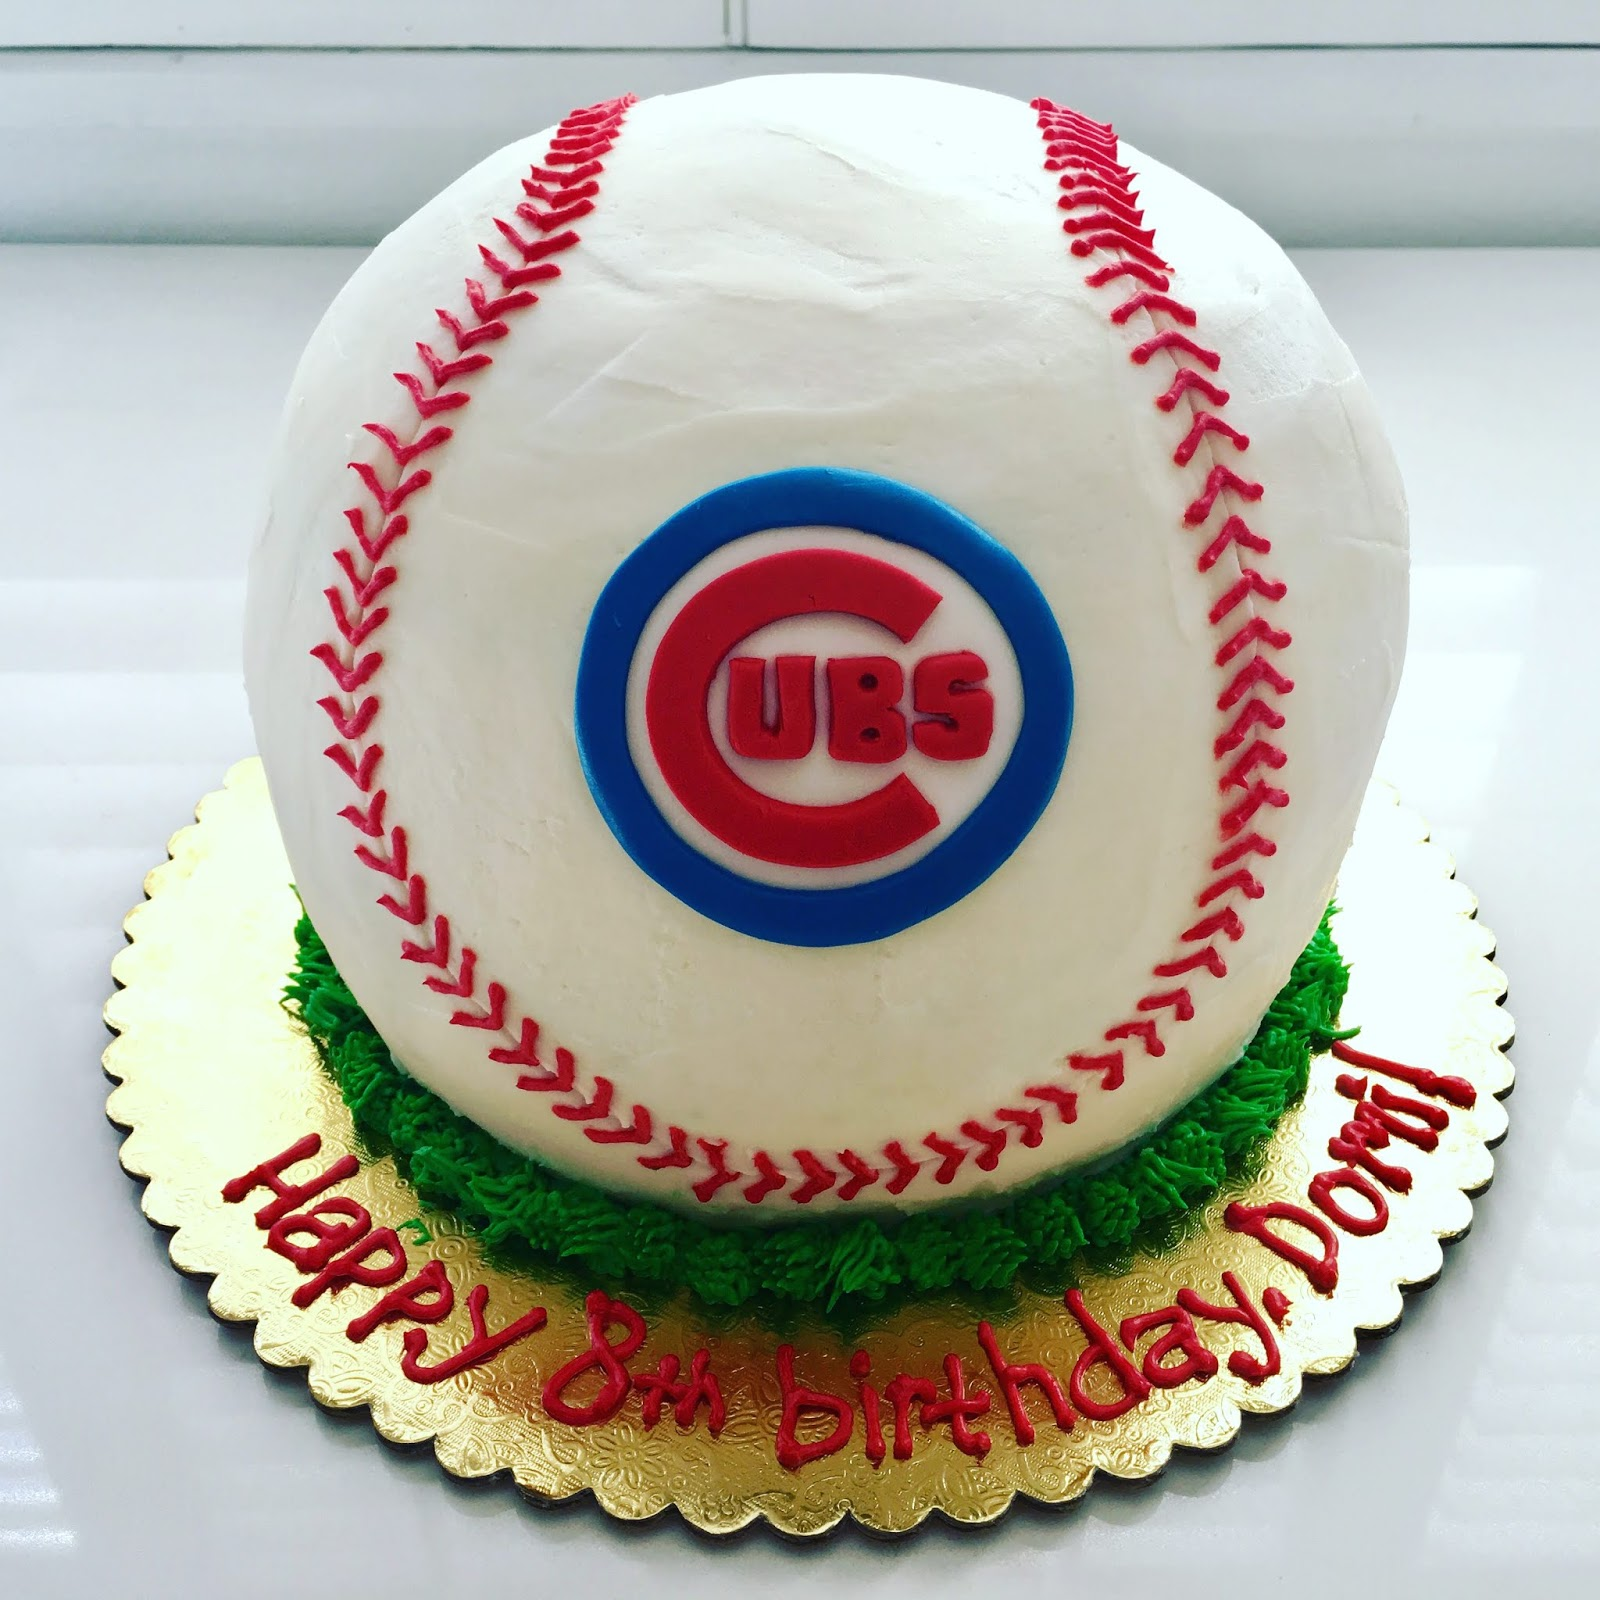 Night Baking Stuff I Havent Posted Go Cubs Go